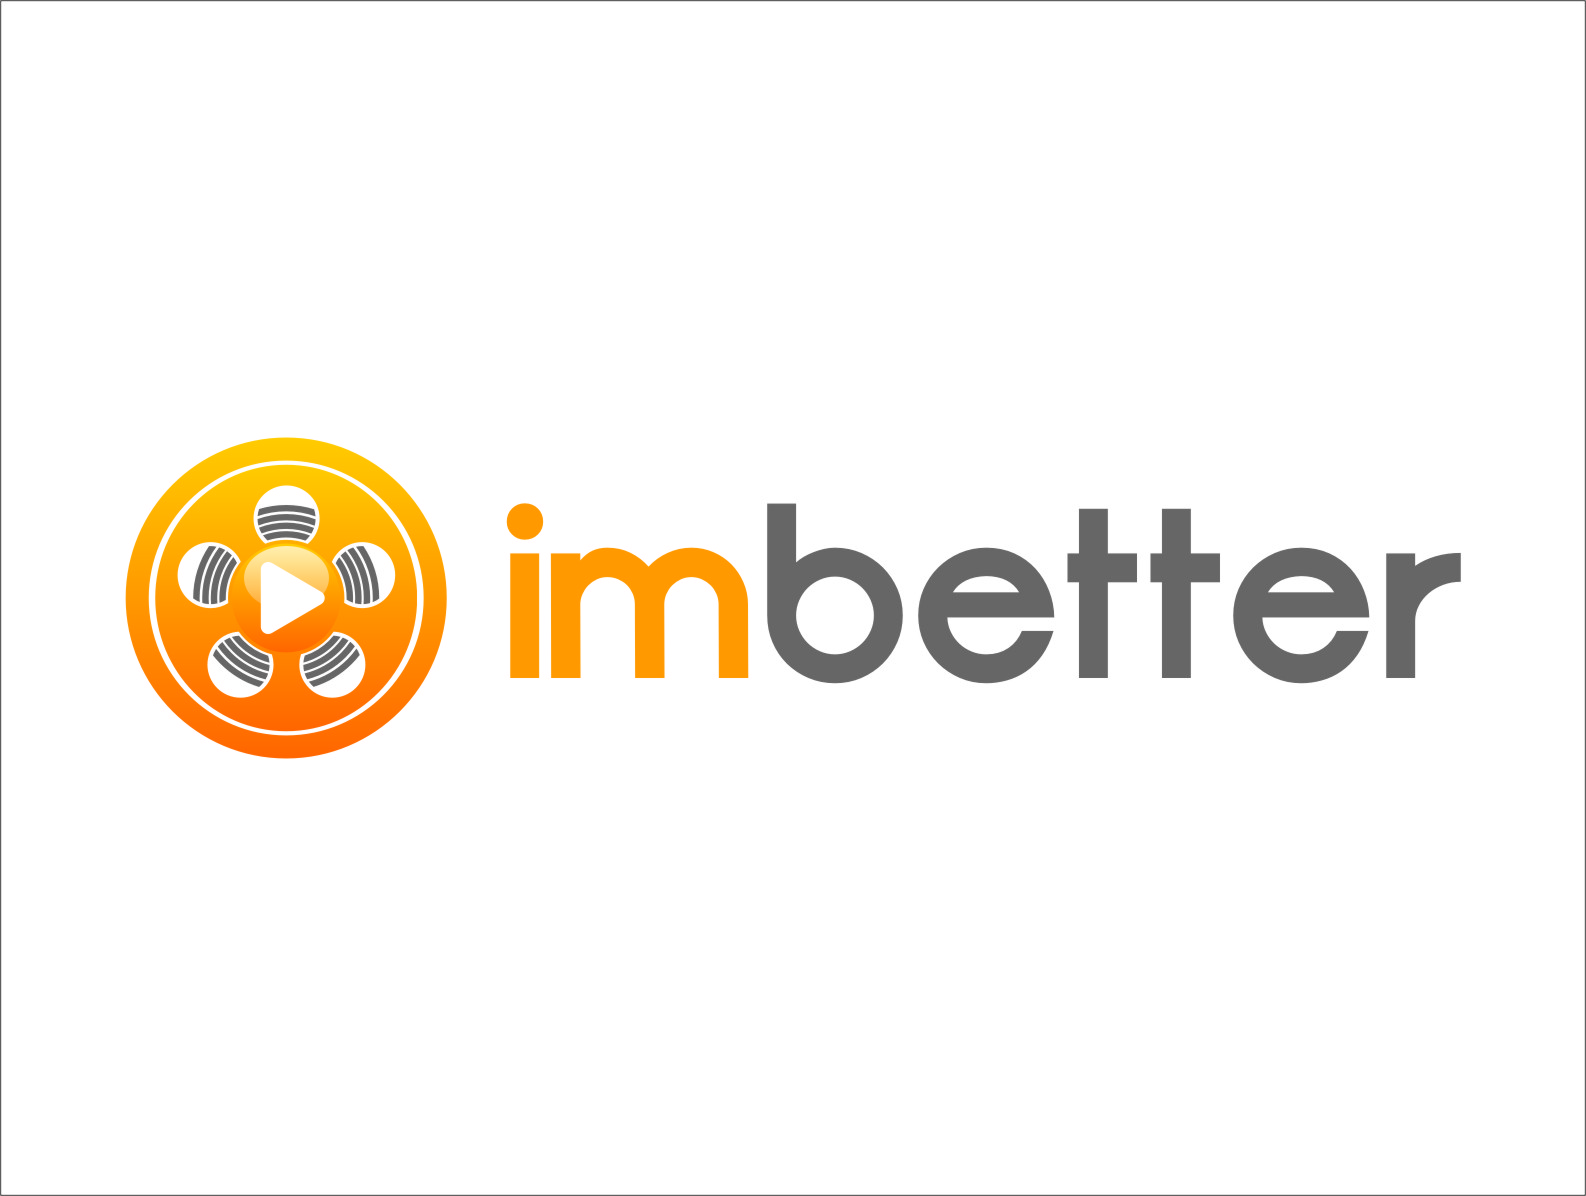 Logo Design by Ngepet_art - Entry No. 150 in the Logo Design Contest Imaginative Logo Design for imbetter.